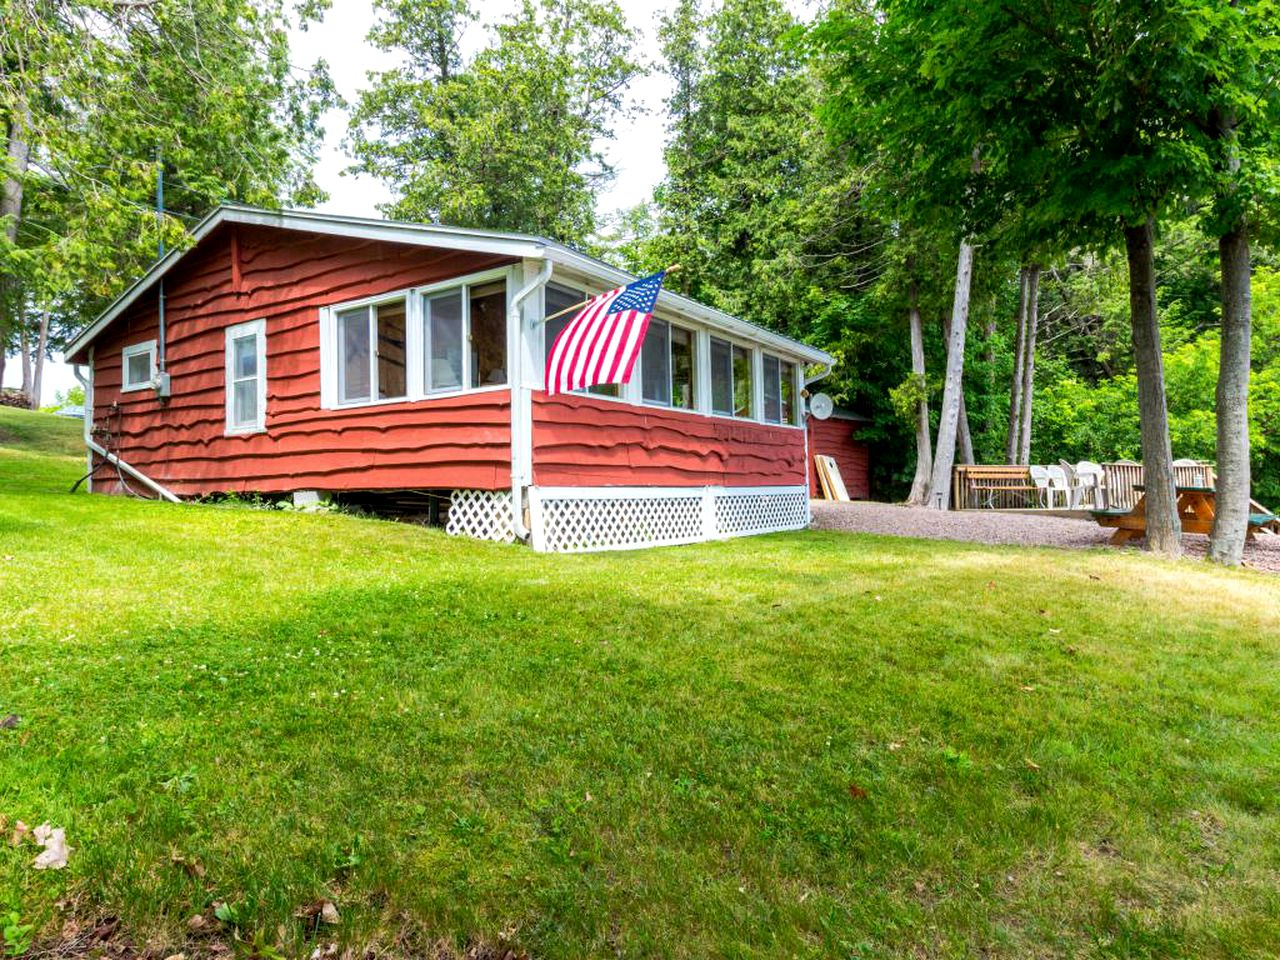 Cabins (Grand Isle, Vermont, United States)